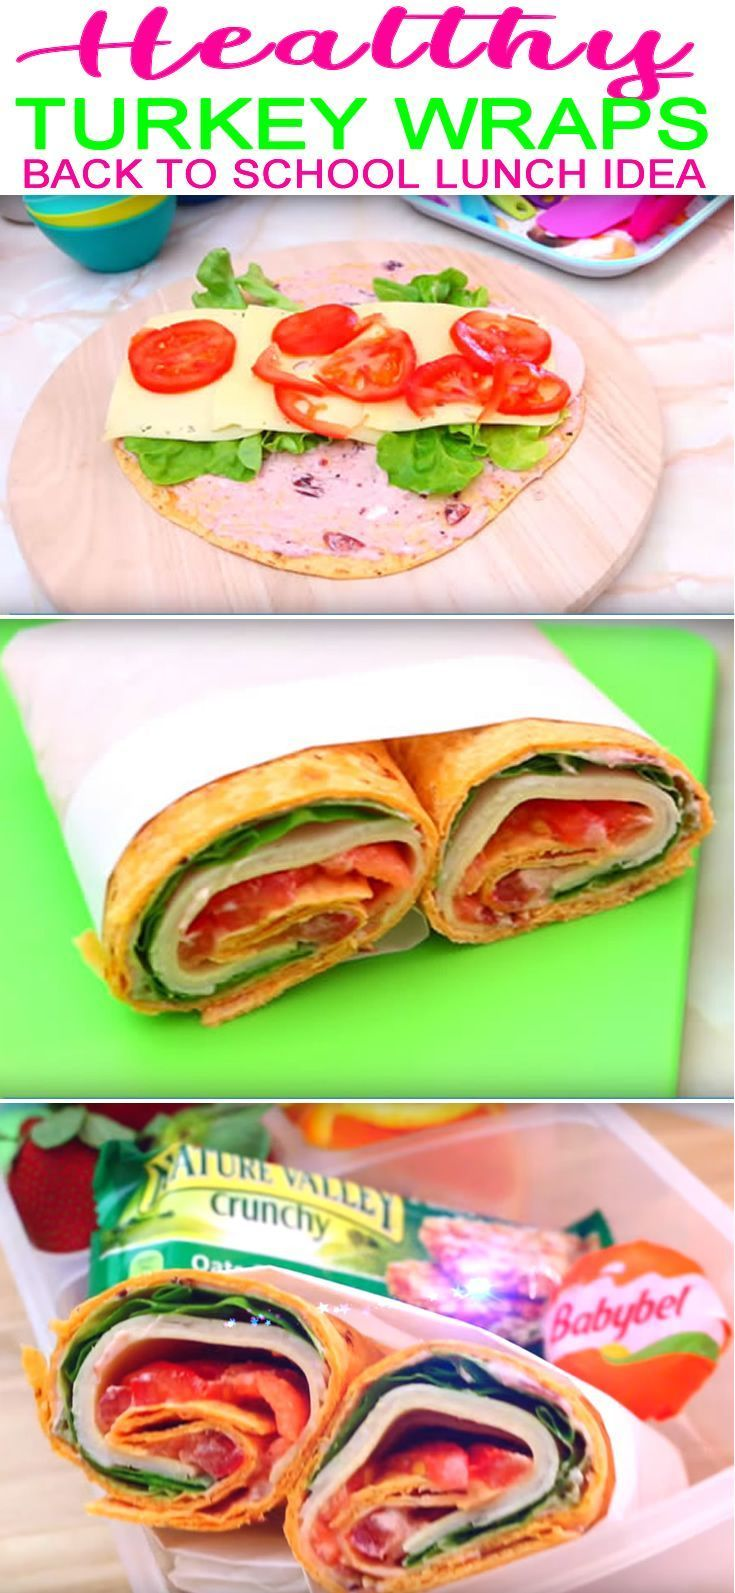 Easy Healthy School Lunch Ideas For Kids & Teens | Easy & Simple Turkey Wraps